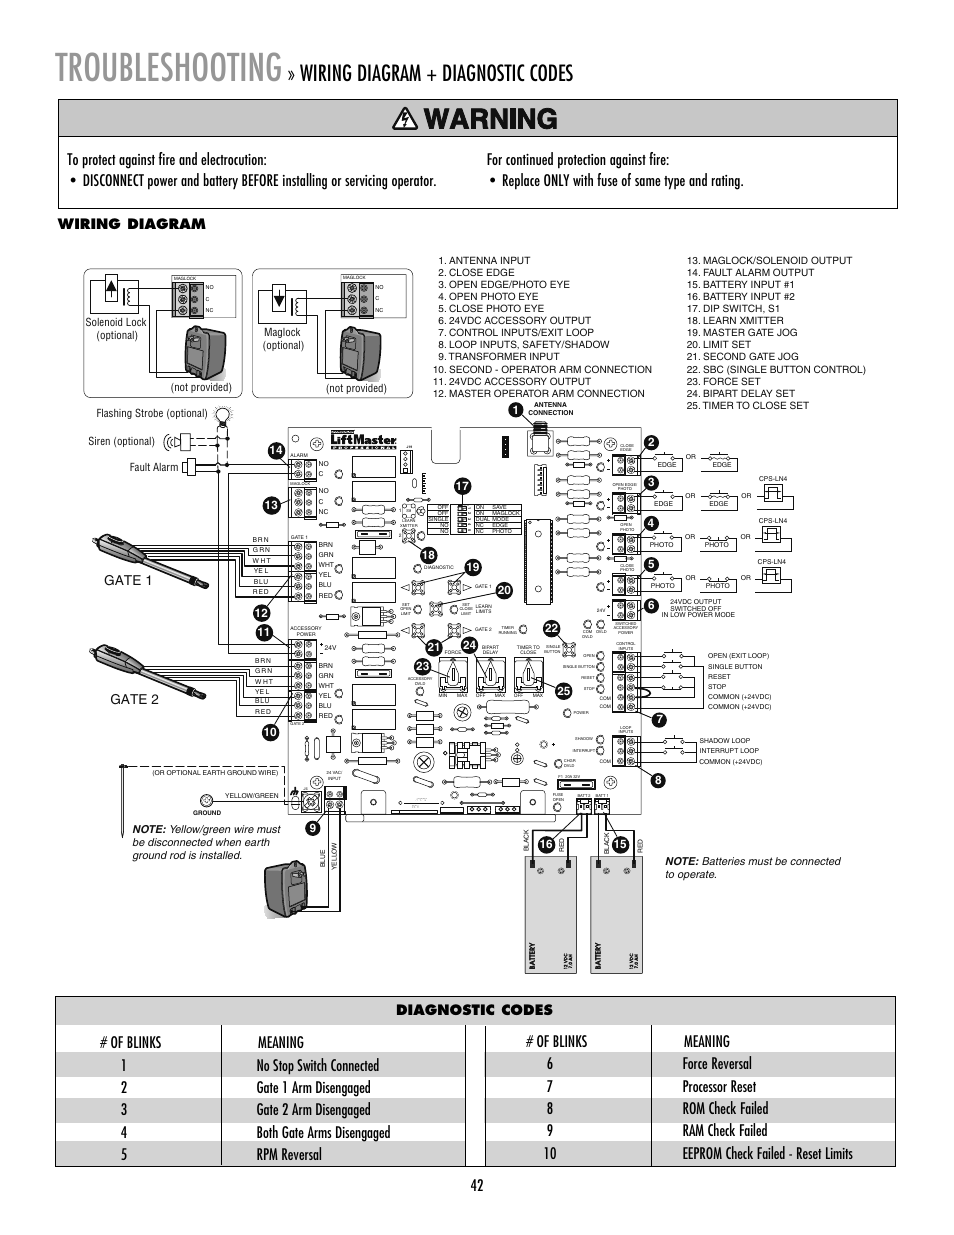 Wiring Diagram  Diagnostic Codes  Troubleshooting